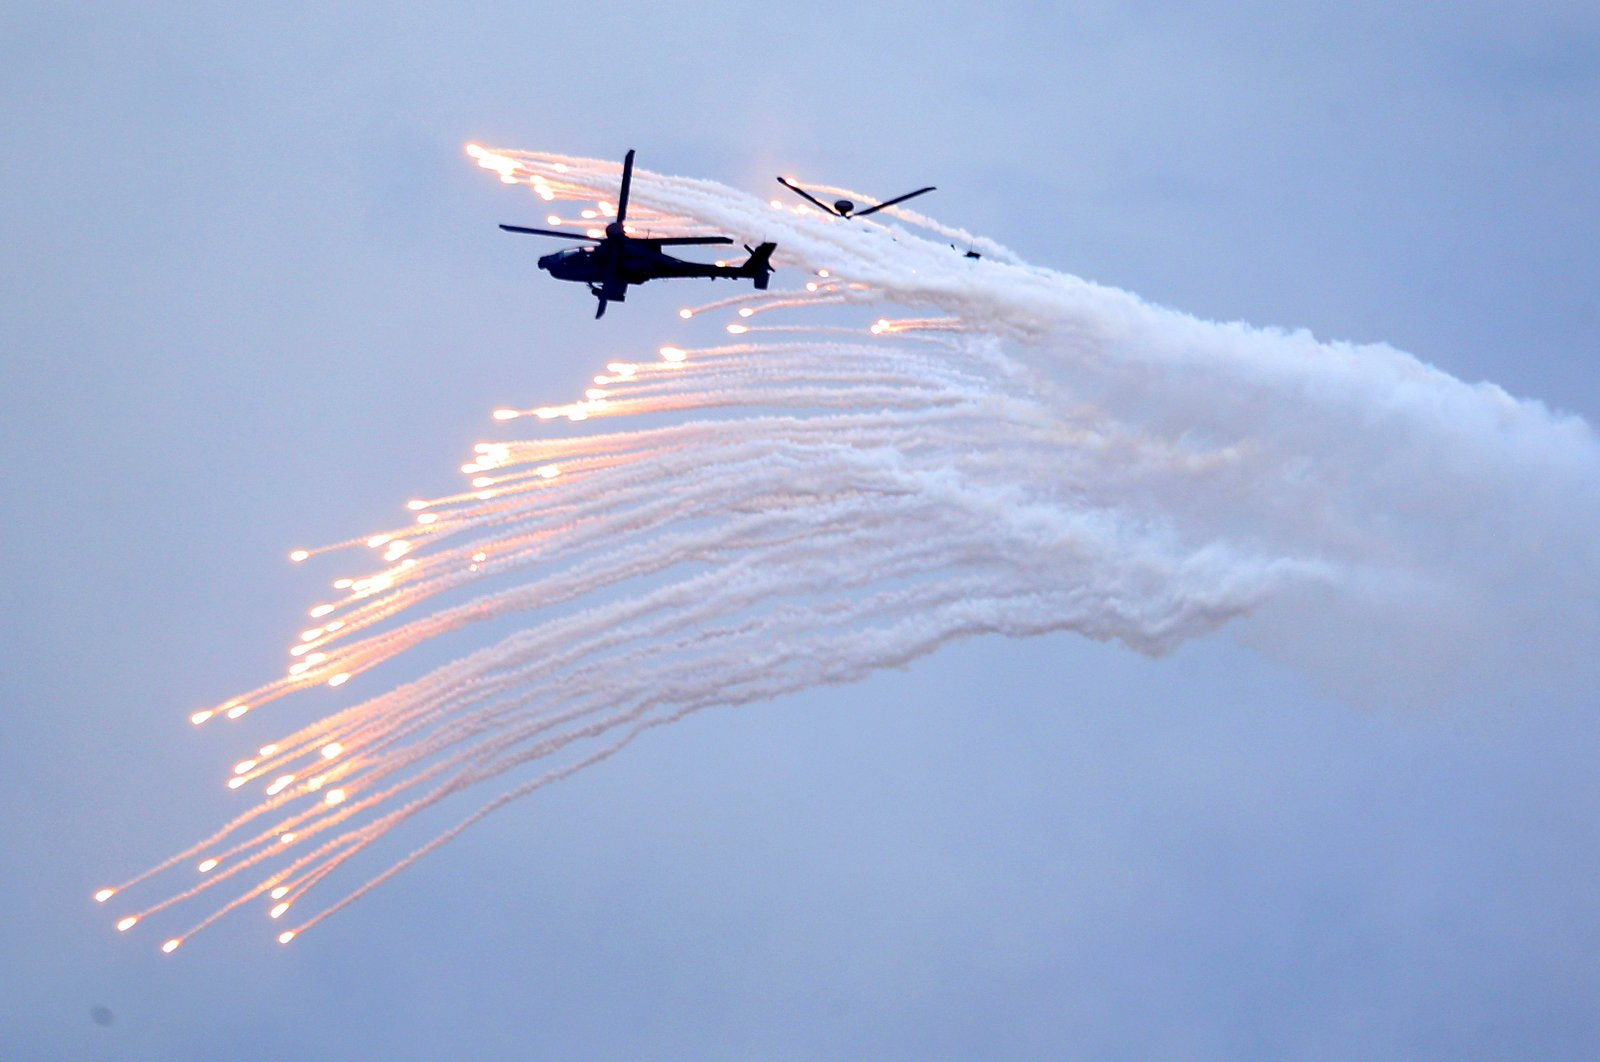 Taiwan's AH-64E Apache attack helicopter launches flares during the 36th Han Kung military exercises in Taichung City, central Taiwan, July 16, 2020. (AP Photo)